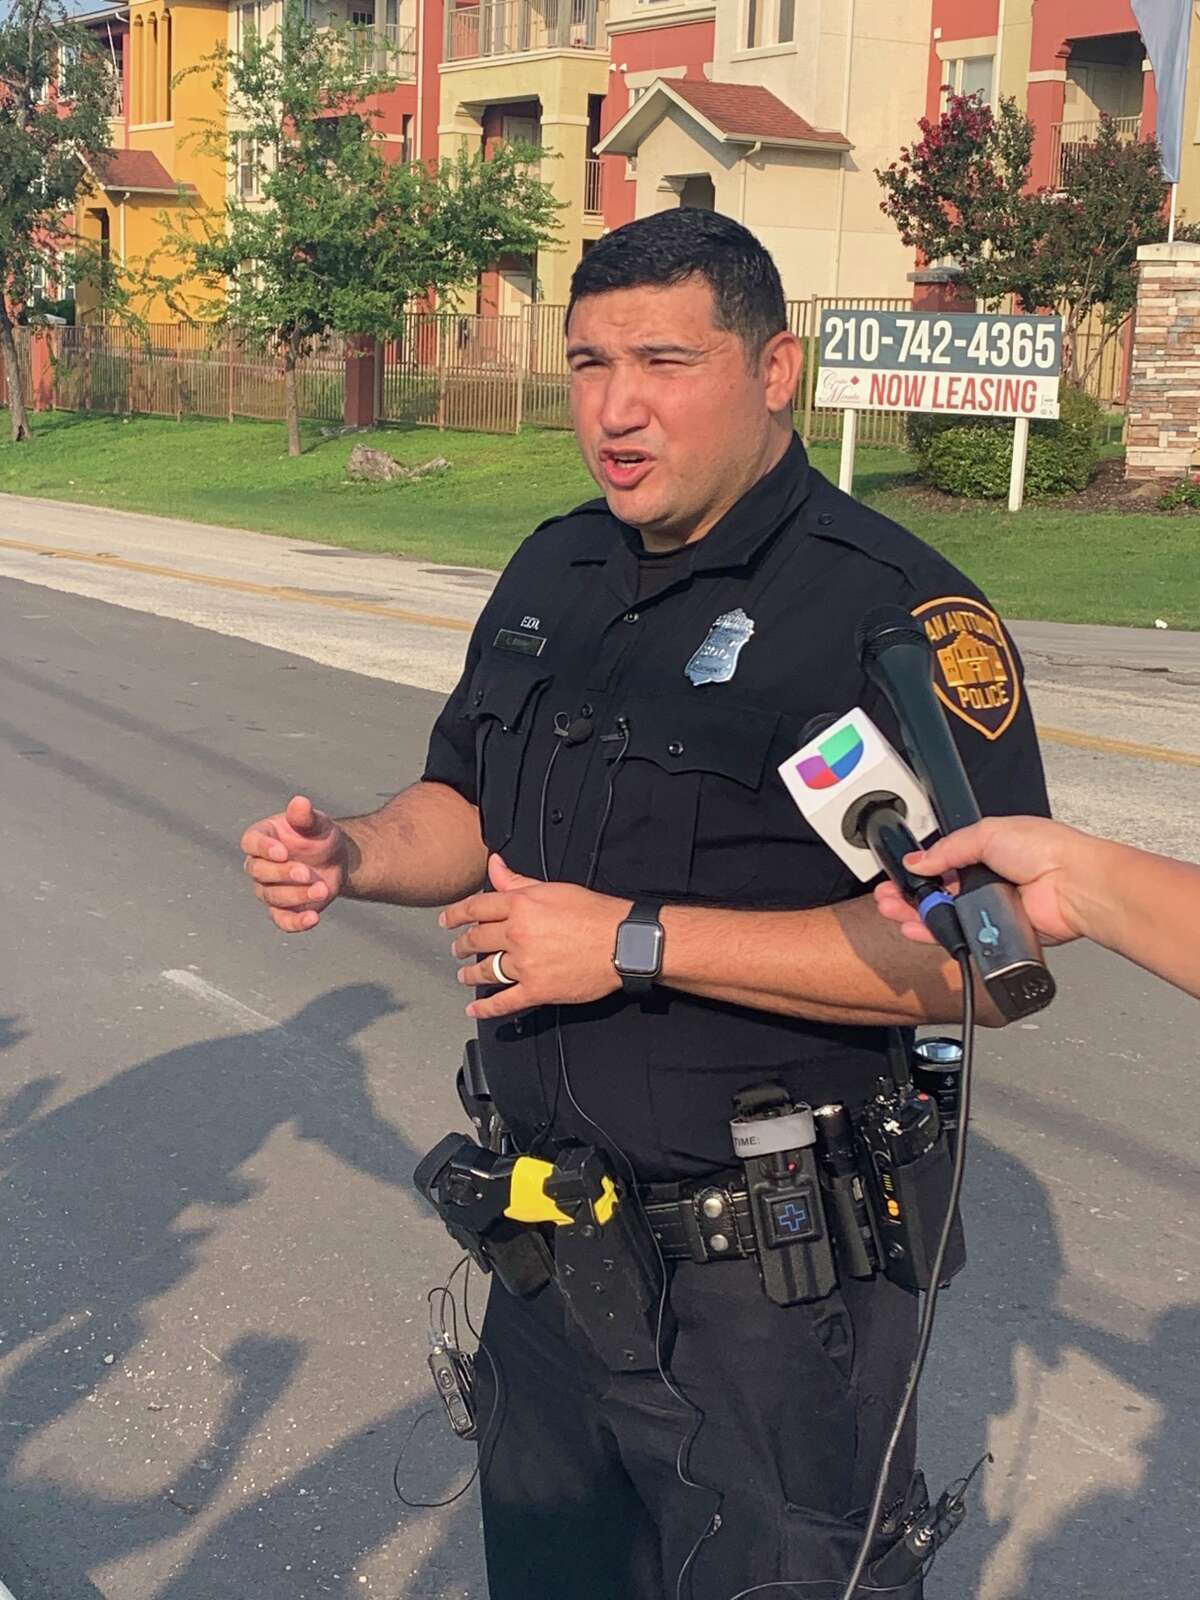 A man suspected of critically wounding another man during a shooting Wednesday morning has barricaded himself inside an apartment on the Southwest Side, San Antonio police said. In this photo, SAPD spokesman Chris Ramos speaks to journalists.